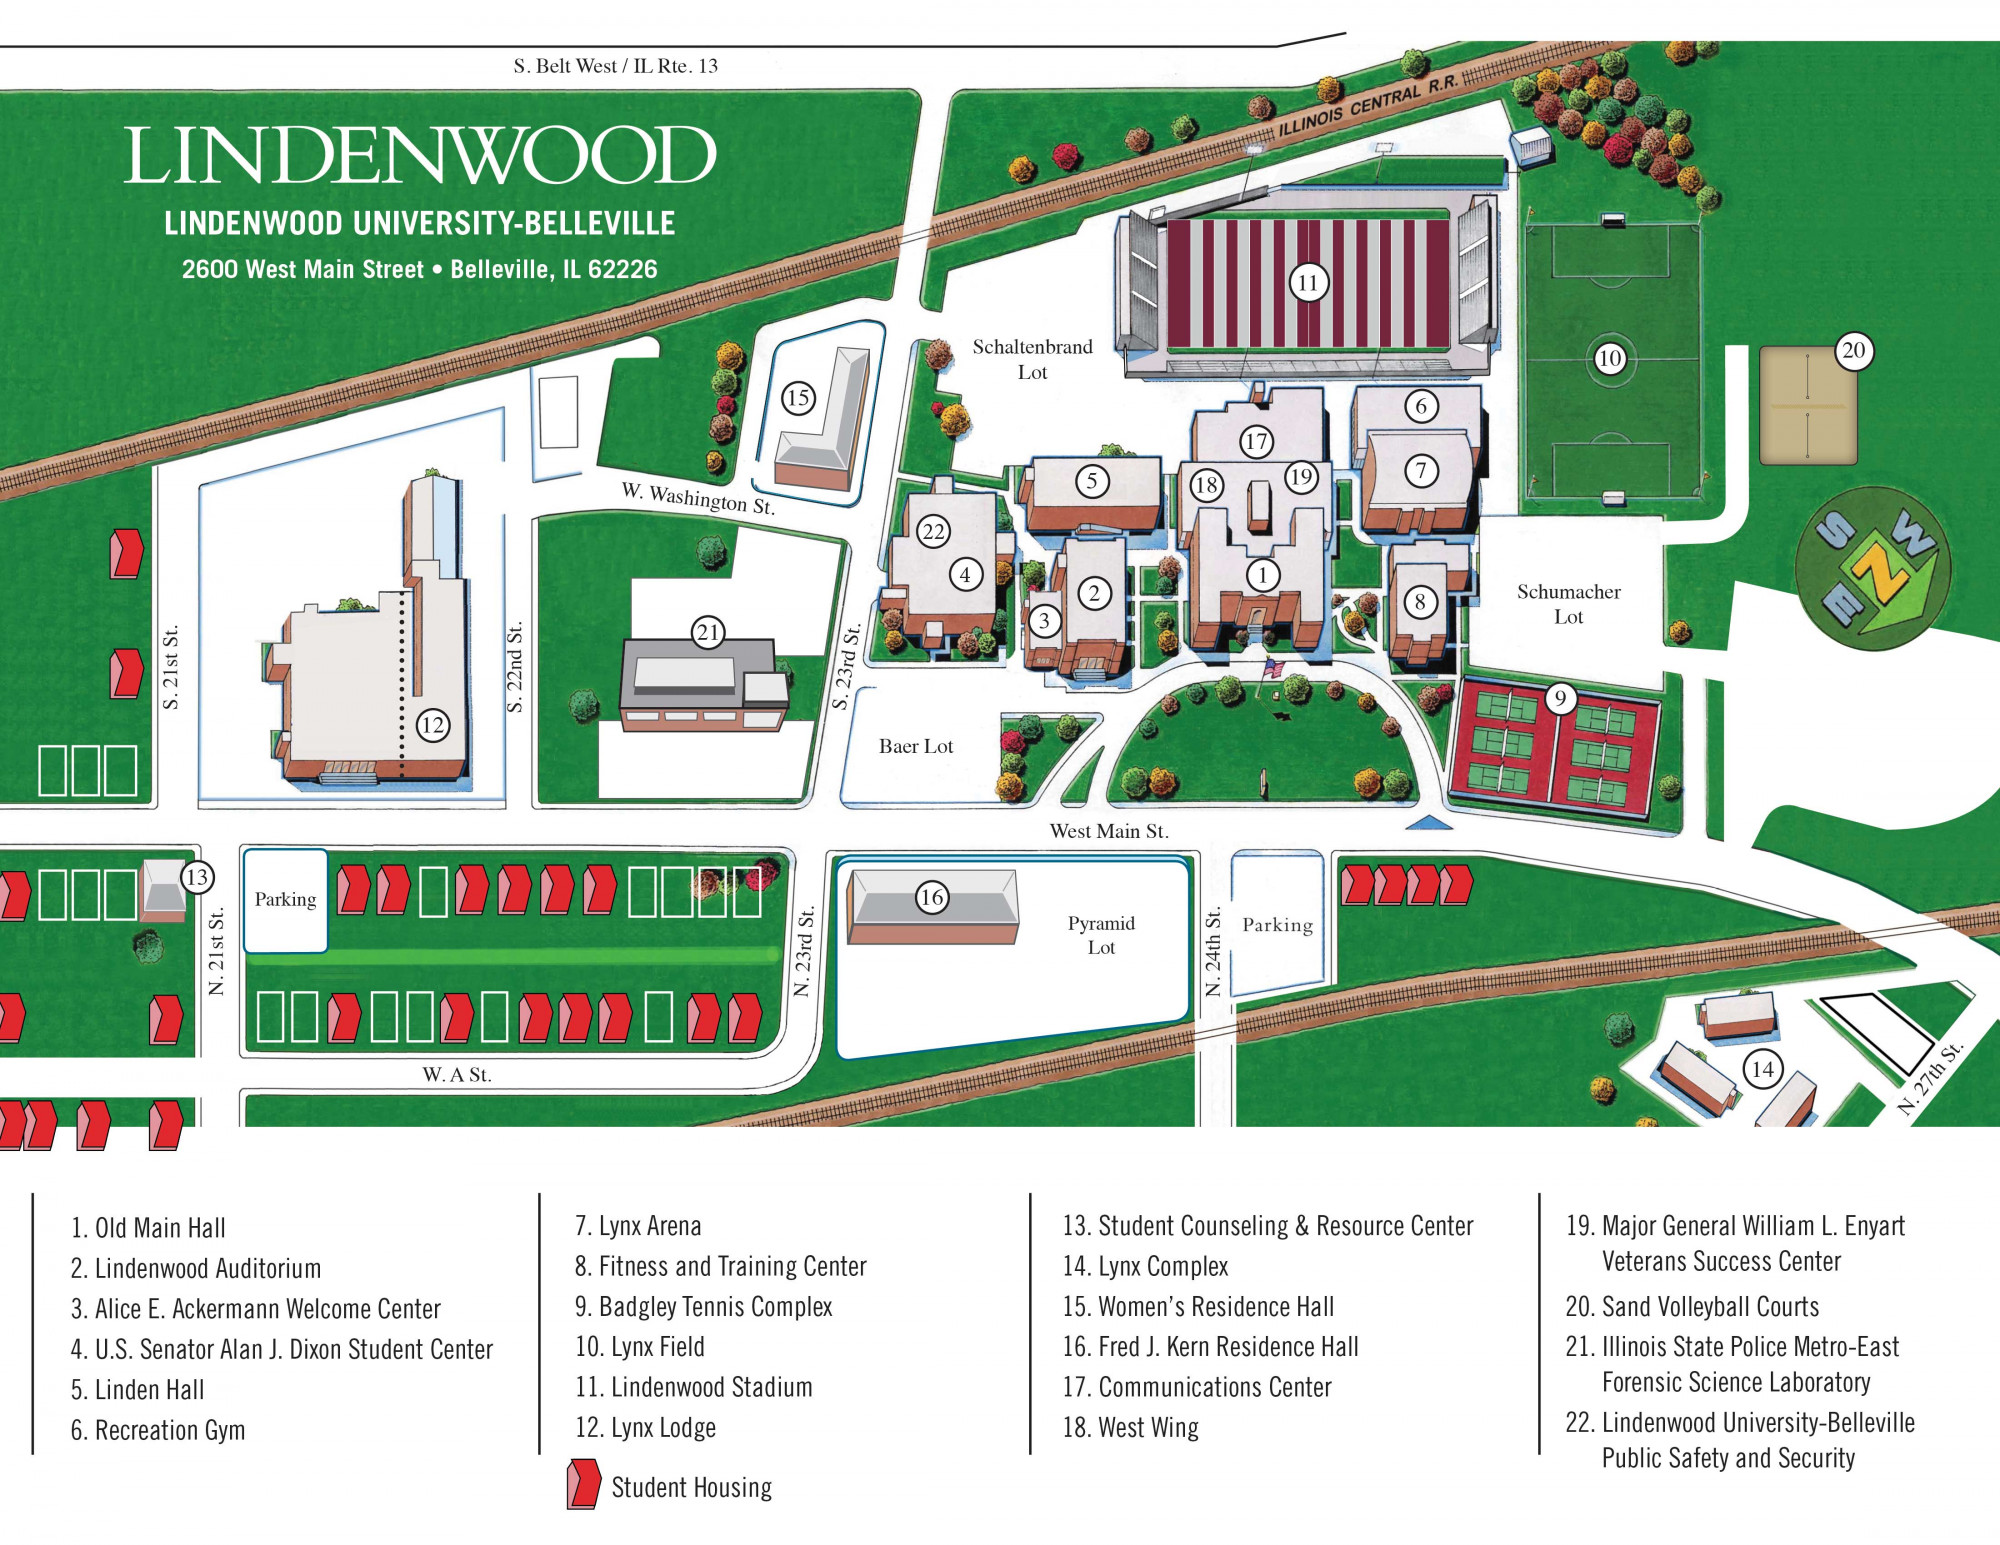 metro state campus map Campus Map For Belleville Lindenwood University Belleville metro state campus map